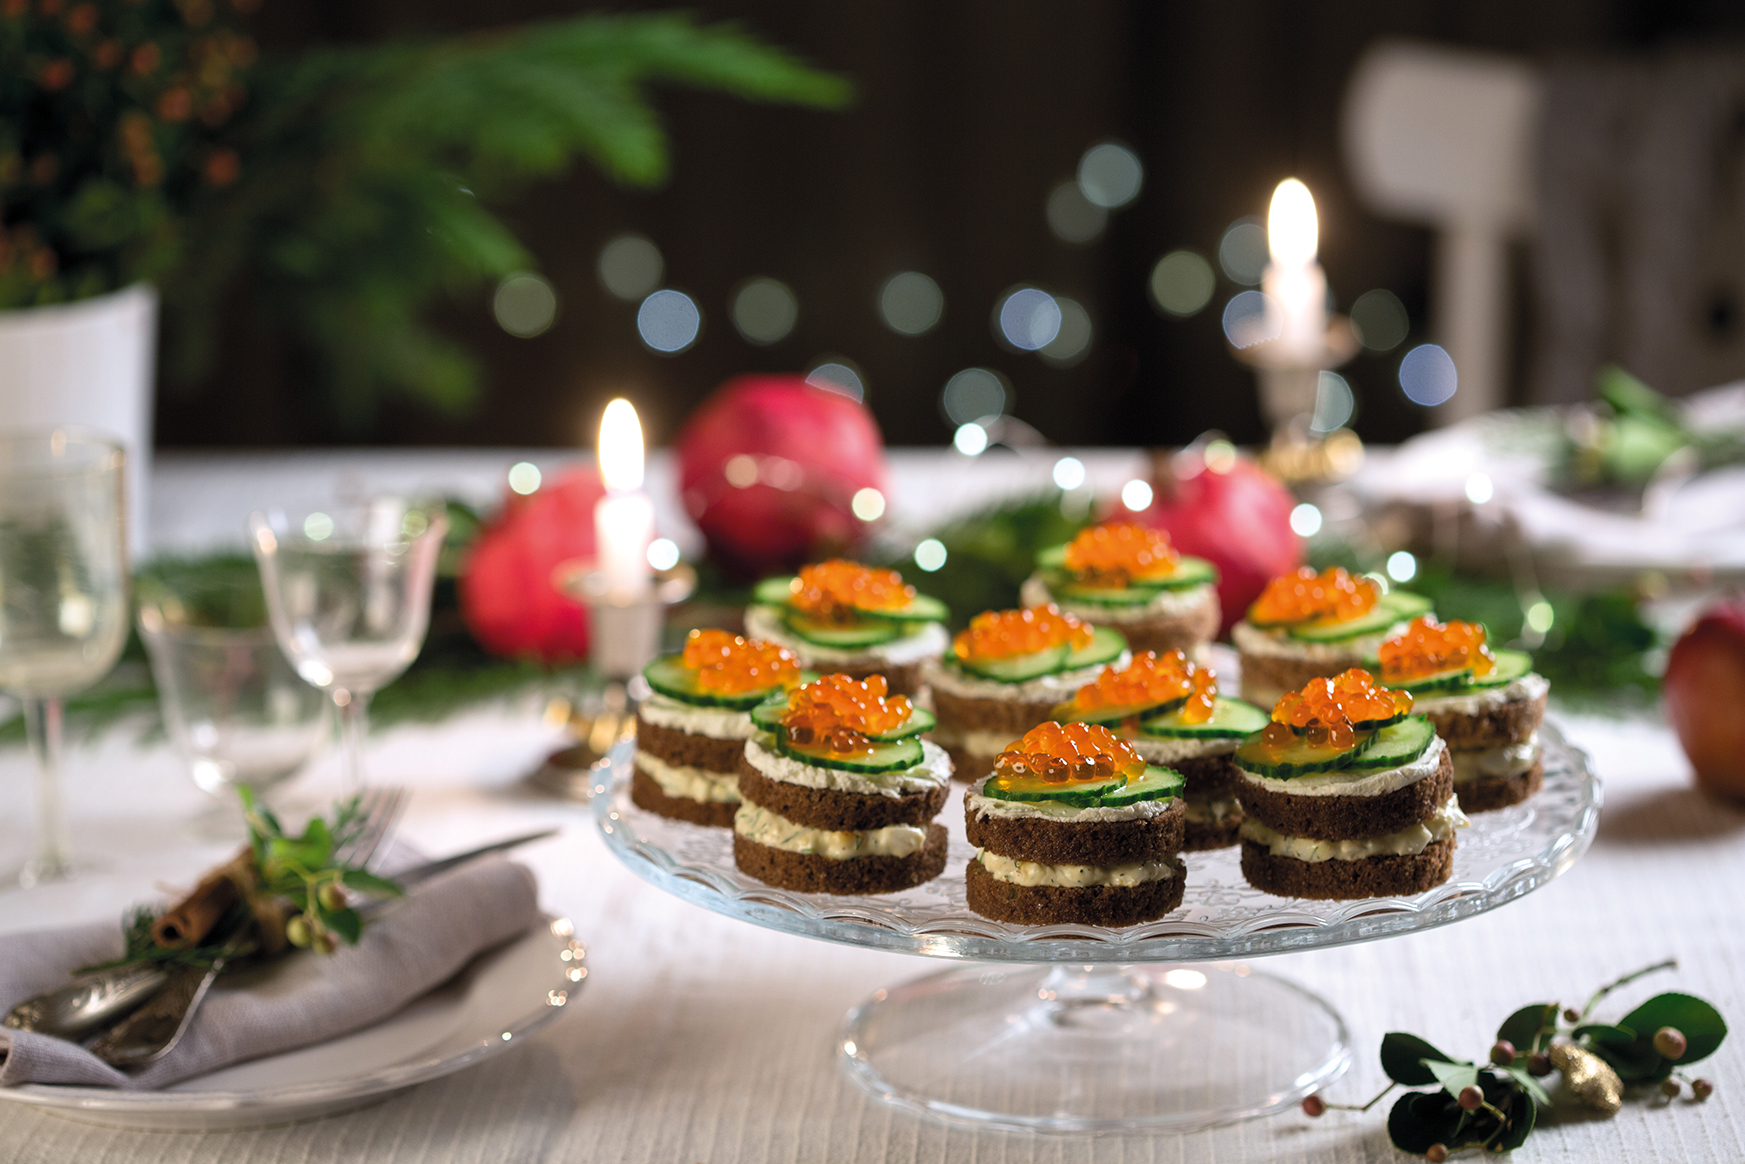 Festive rye bread canapés with egg salad and red caviare